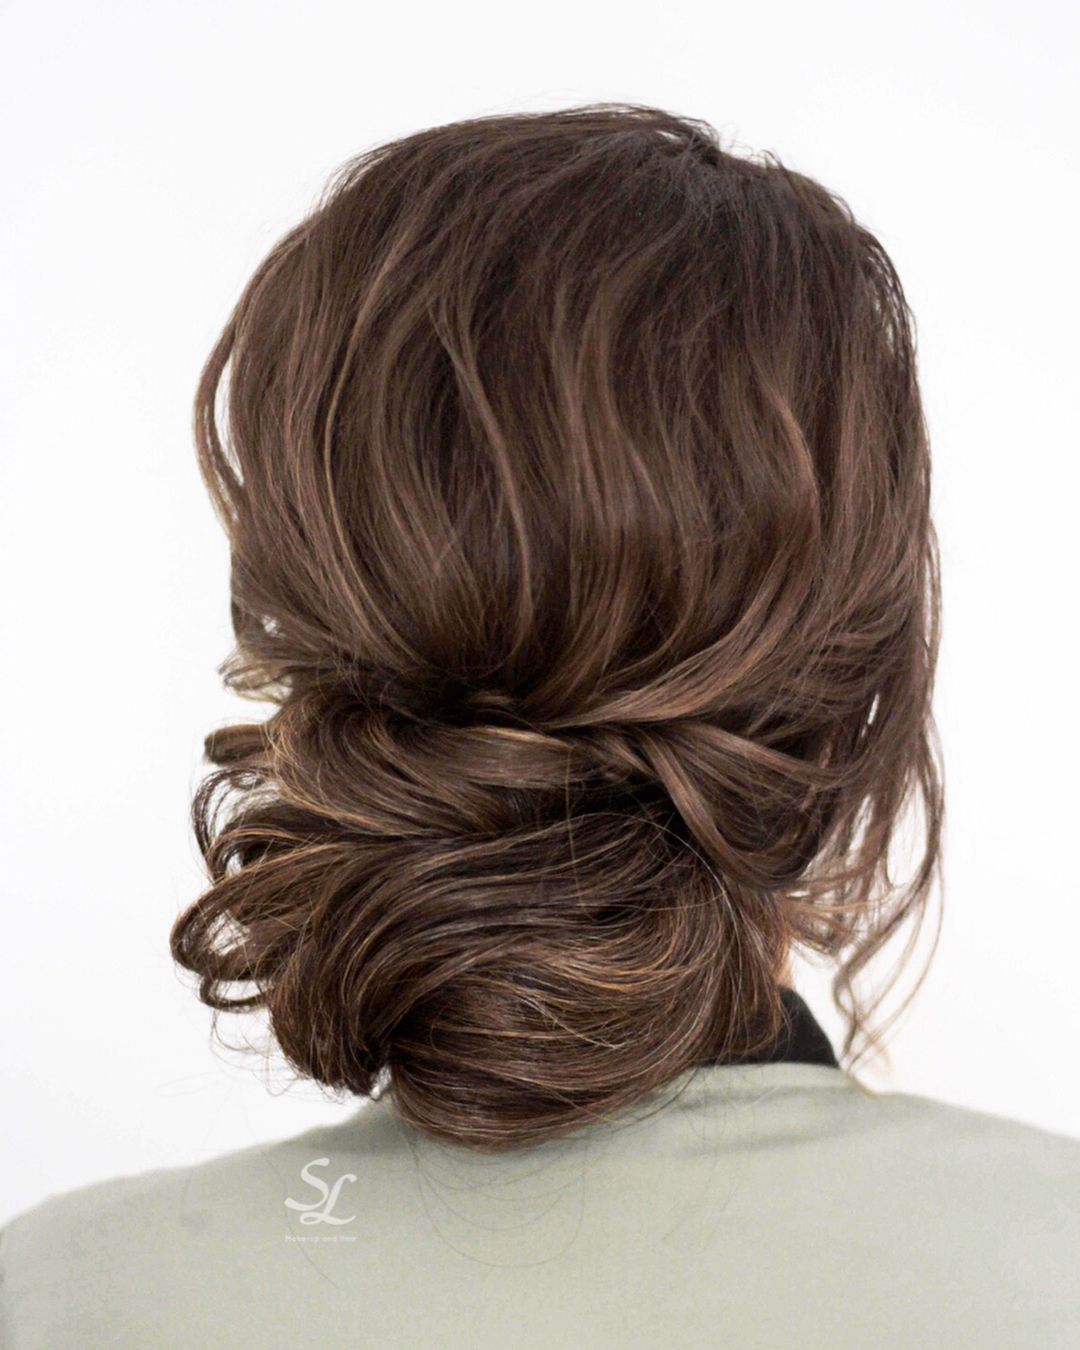 Wedding Hair Color Ideas: 79 Beautiful Bridal Updos Wedding Hairstyles For A